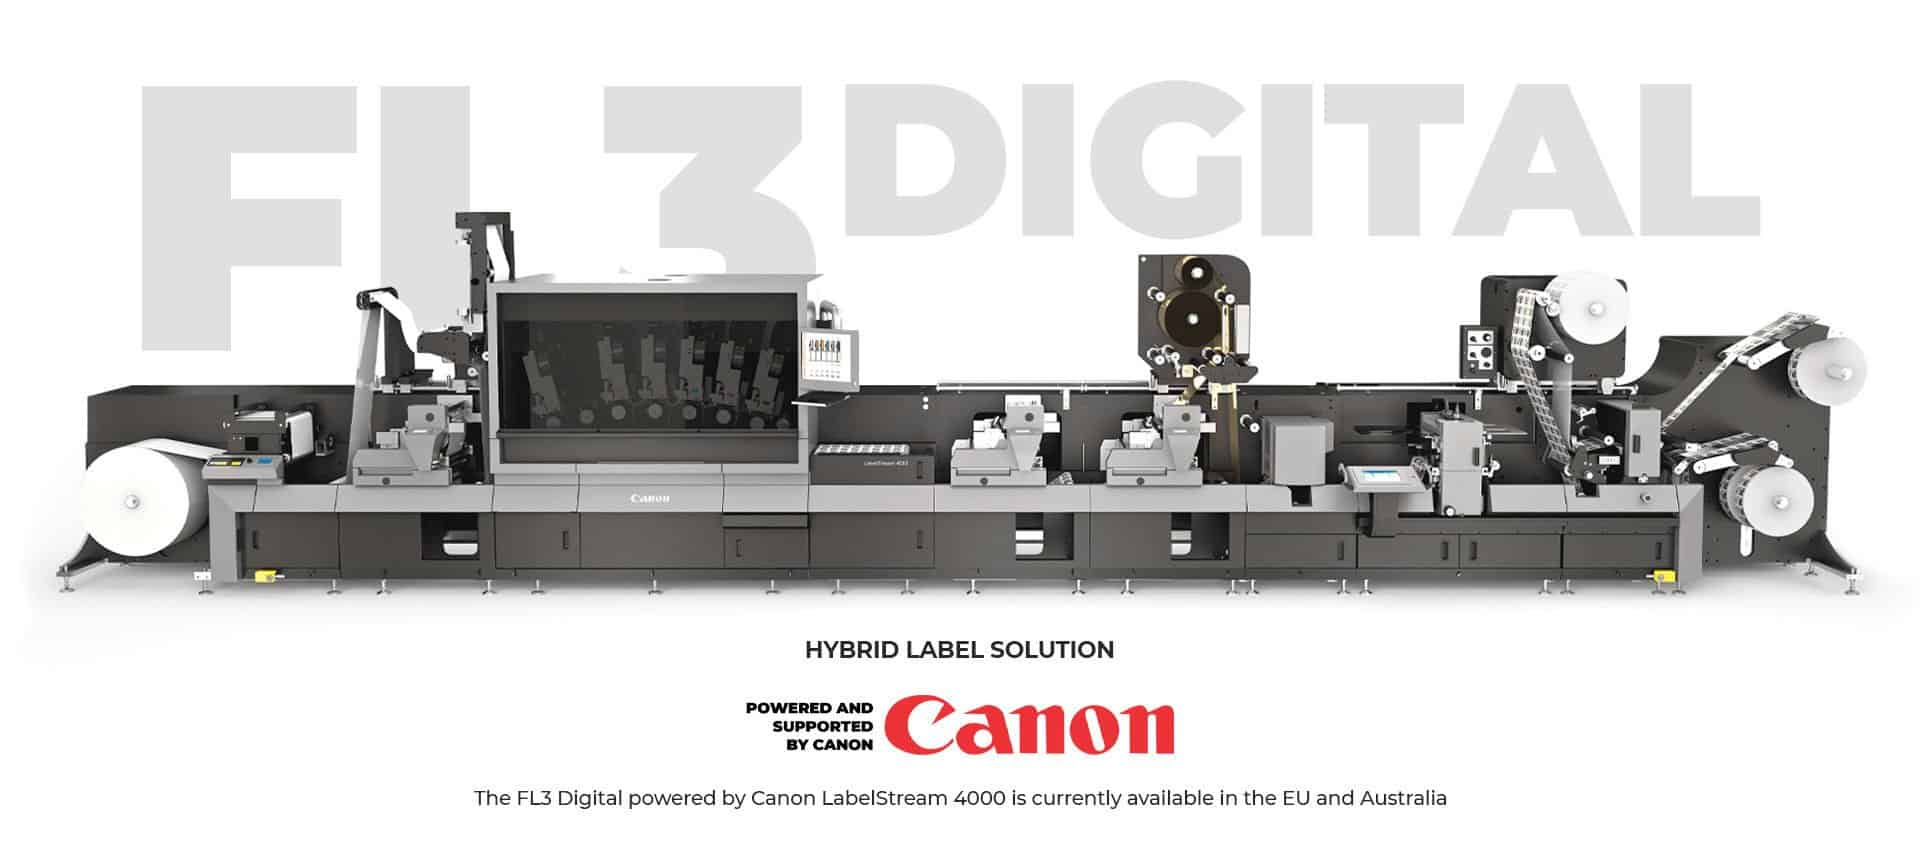 FL3 Digital - POWERED AND SUPPORTED BY CANON-Best Label Production Machine